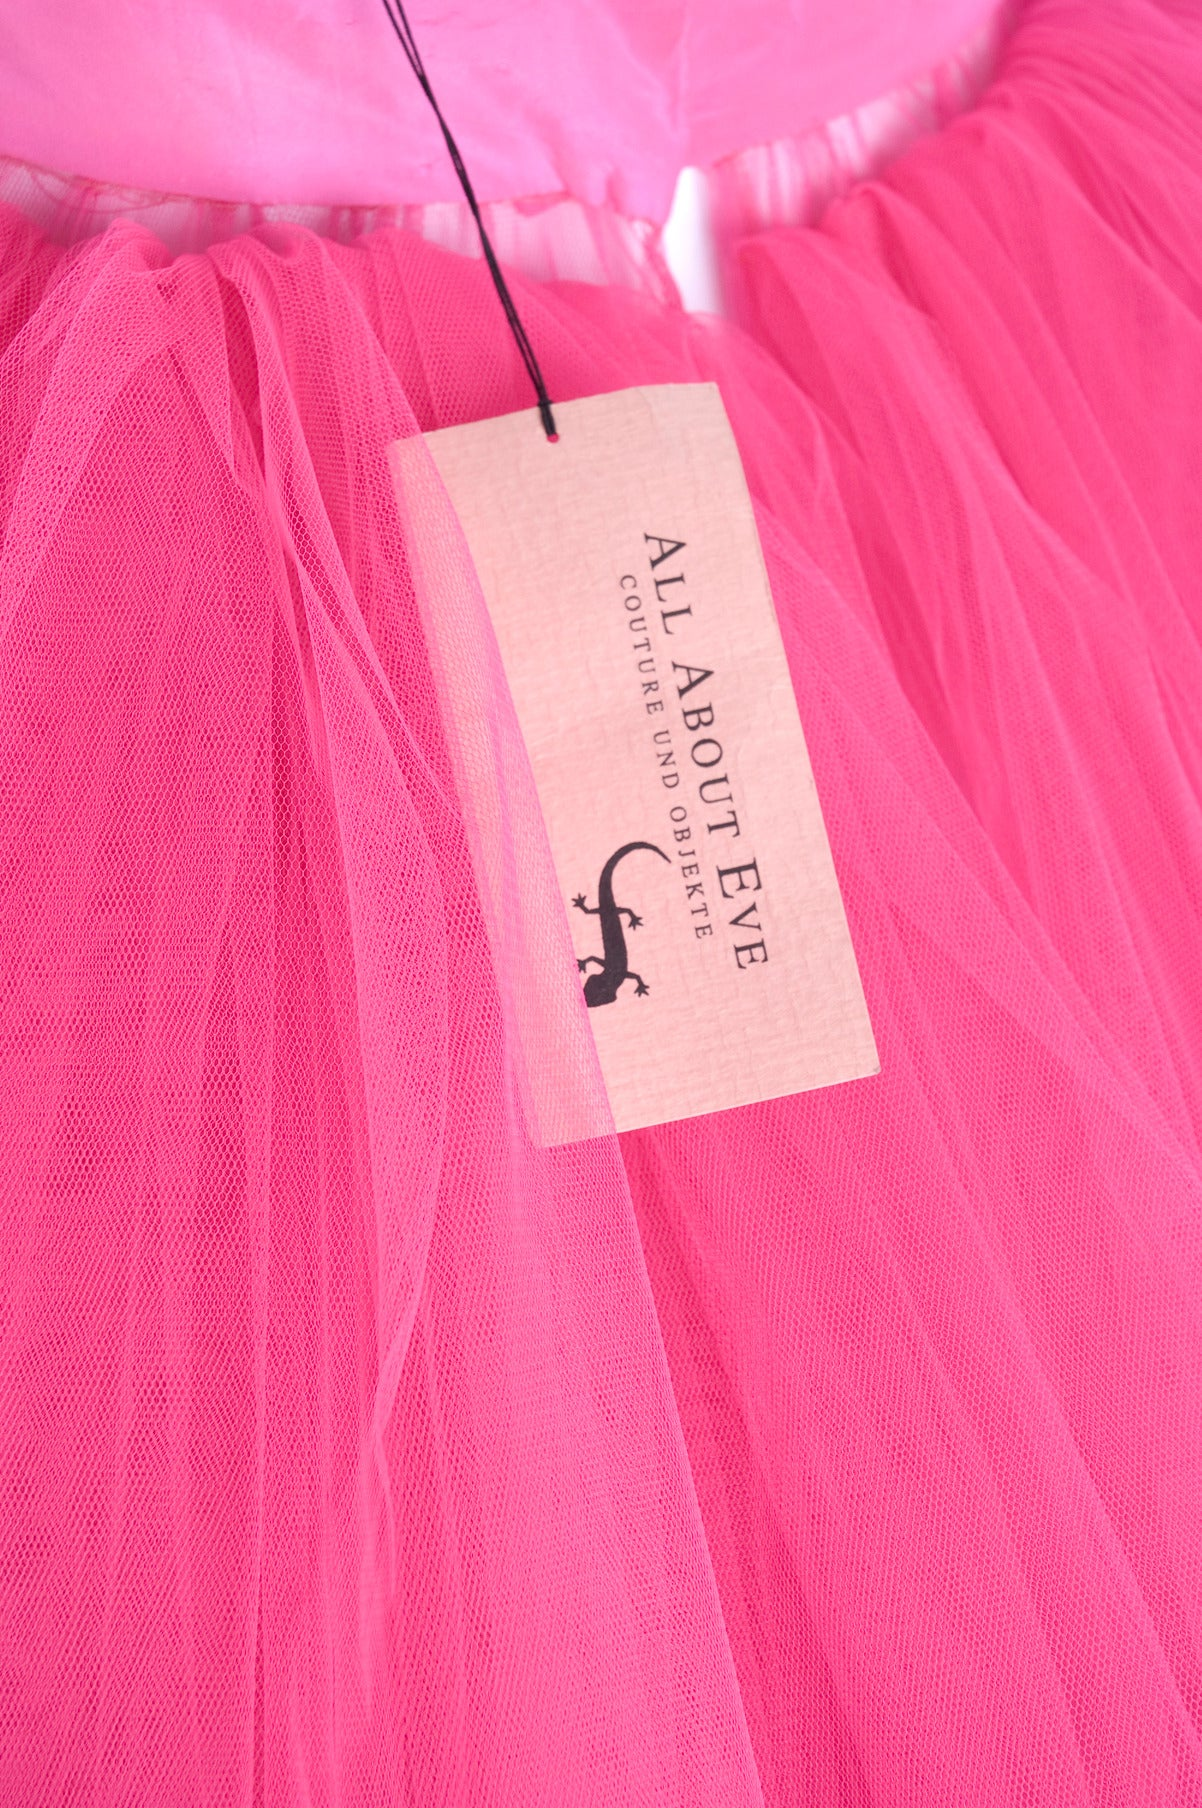 All About Eve Couture by Talbot Runhof Tulle Skirt 7